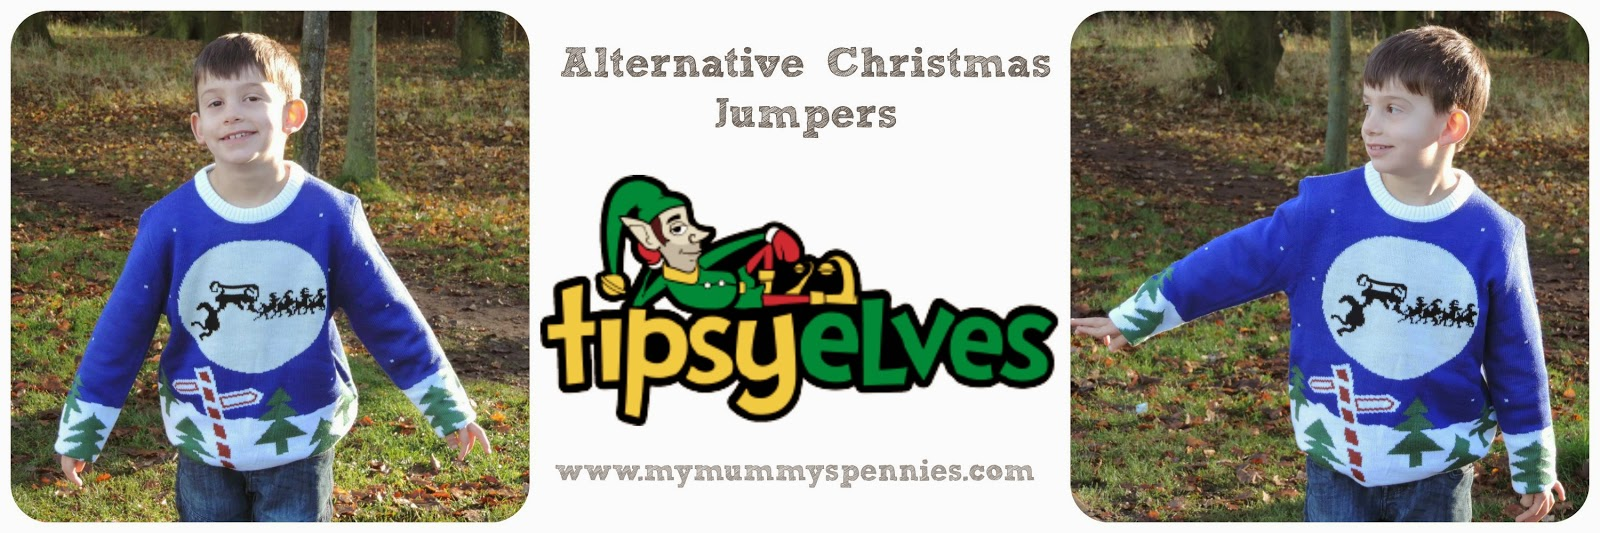 Alternative Christmas Jumpers from Tipsy Elves